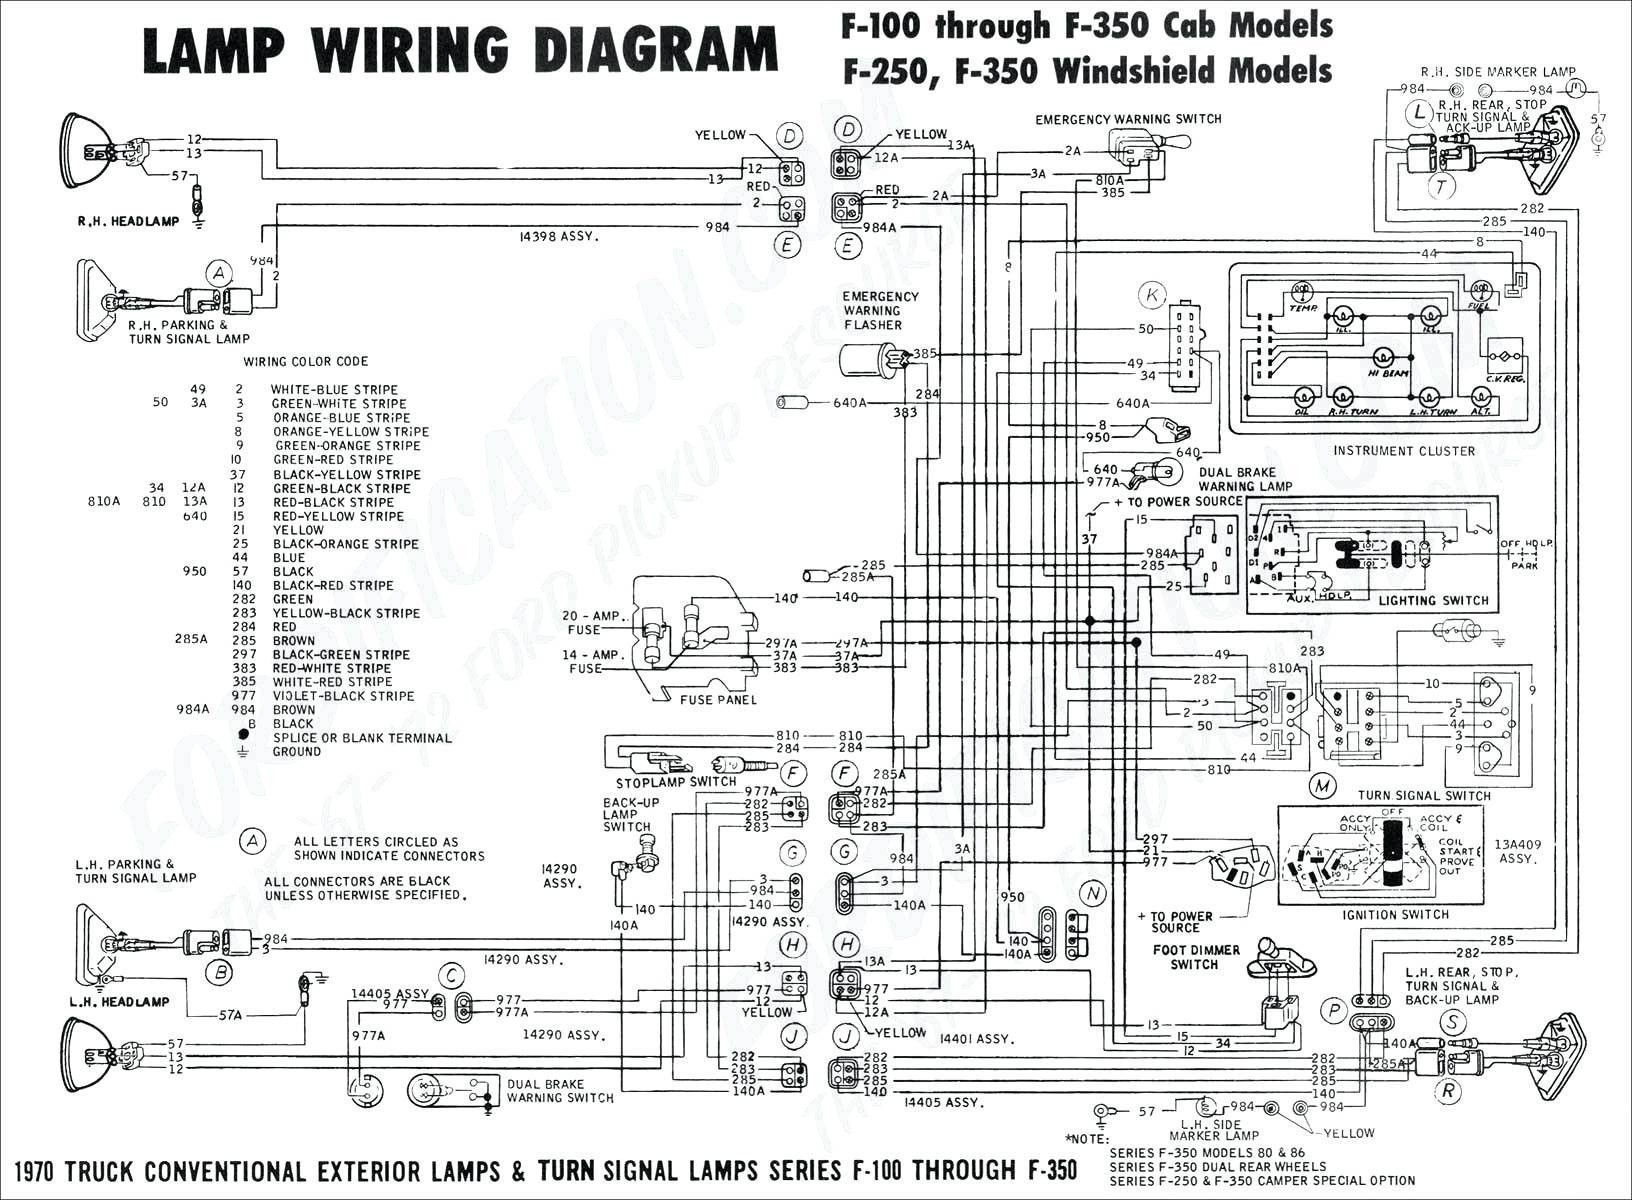 Oliver 70 Wiring Diagram - Wiring Diagram Var on